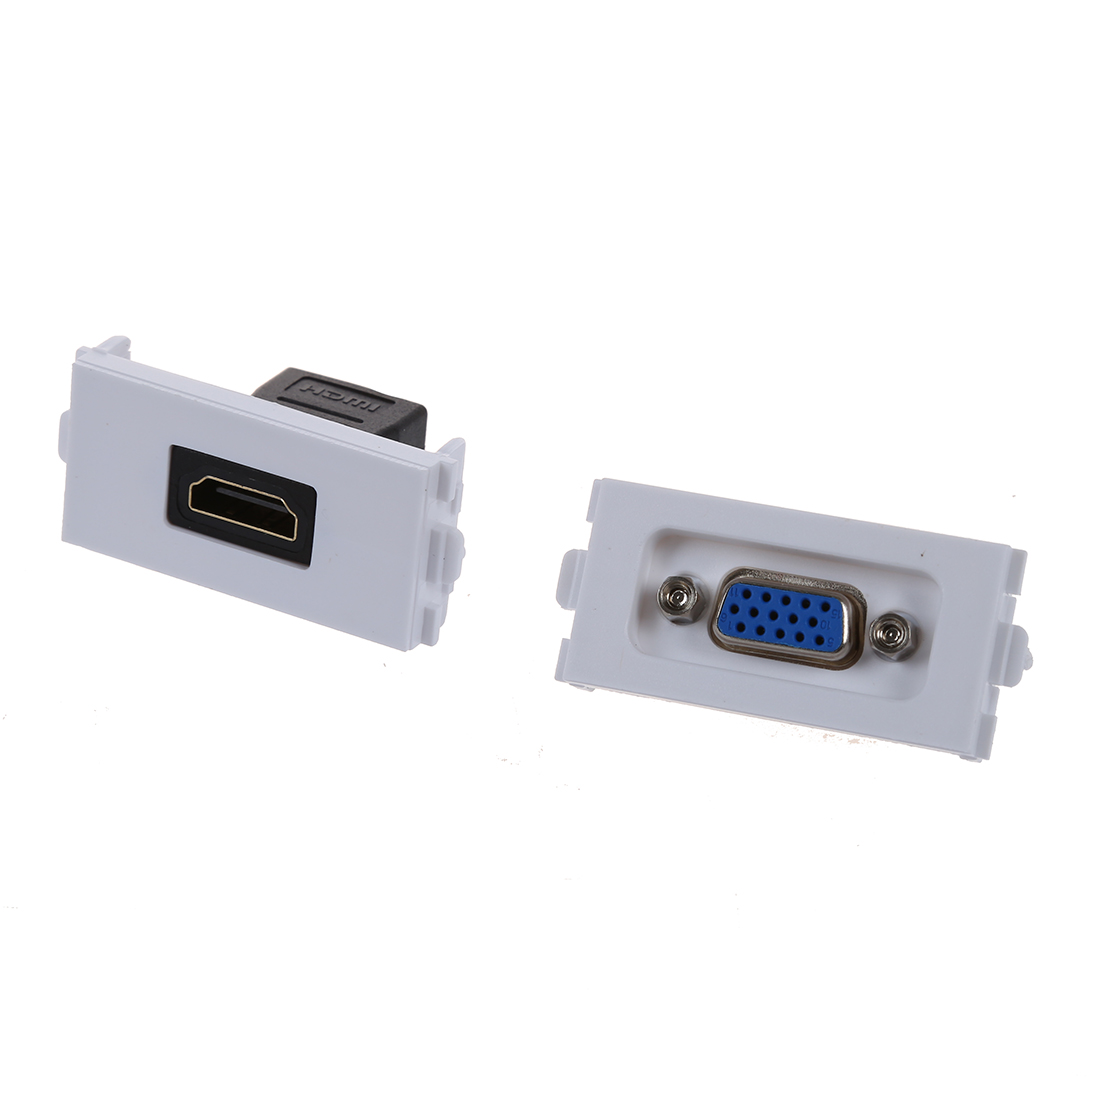 female hdmi vga socket jack outlet ponent posite video wall Home Depot HDMI Wall Outlet female hdmi vga socket jack outlet ponent posite video wall panel plate on aliexpress alibaba group